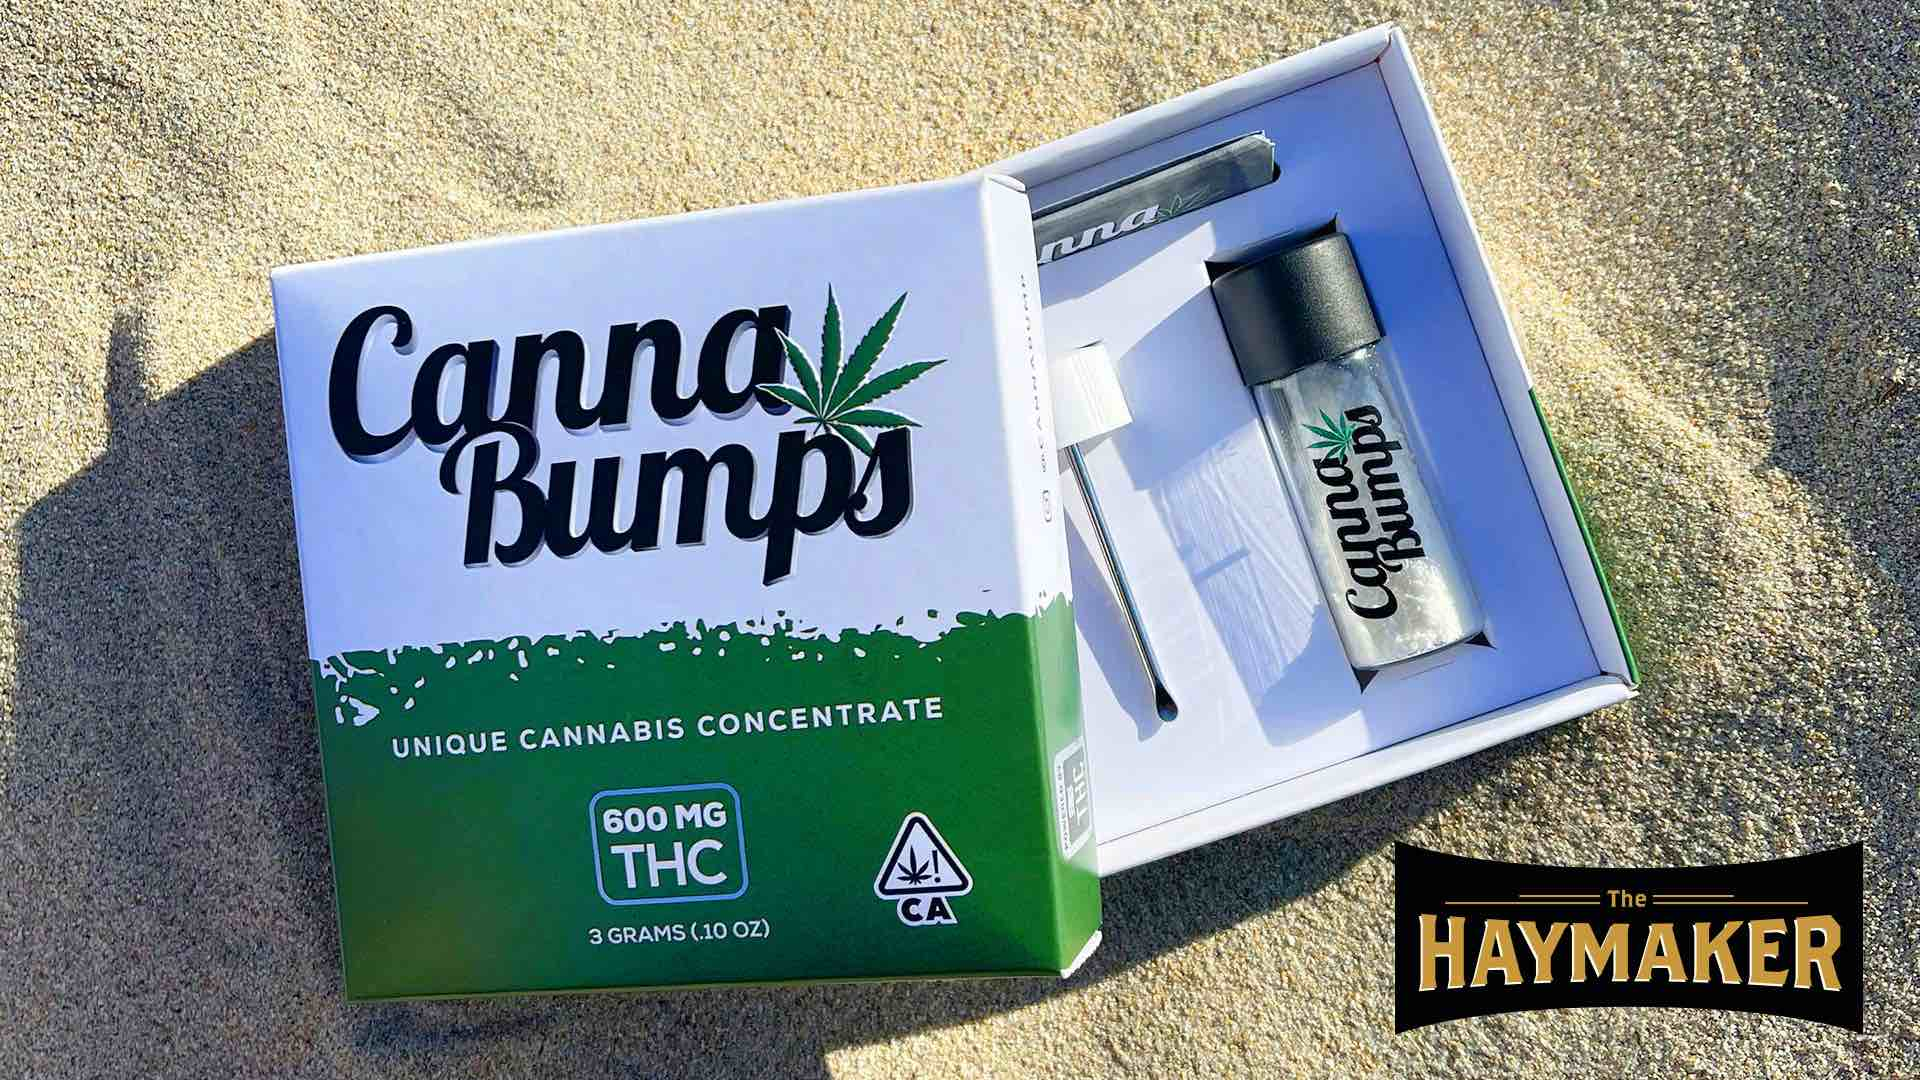 Canna-Bumps-HAYMAKER-featured-image.jpg